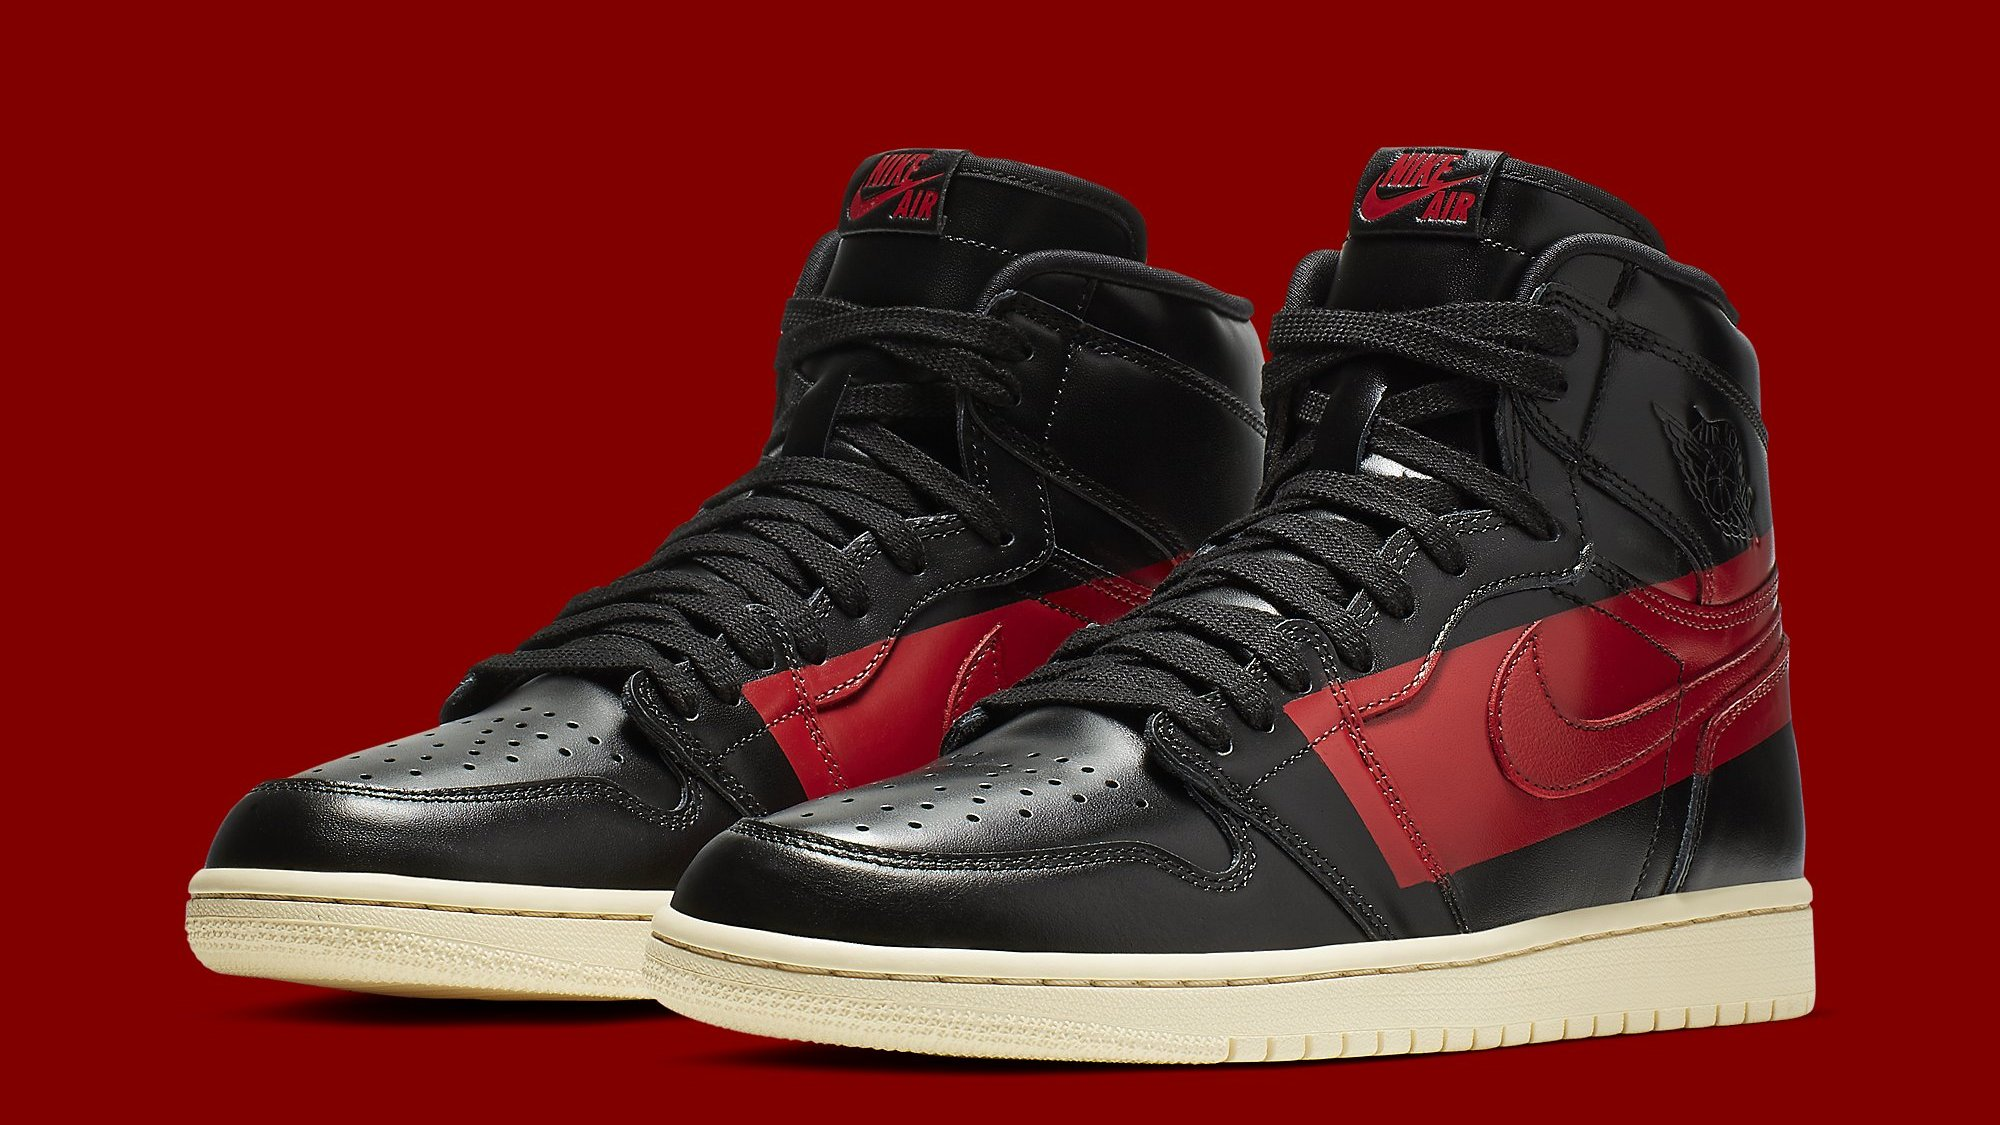 Air Jordan 1 High OG Defiant 'BlackGym RedMuslin' Release